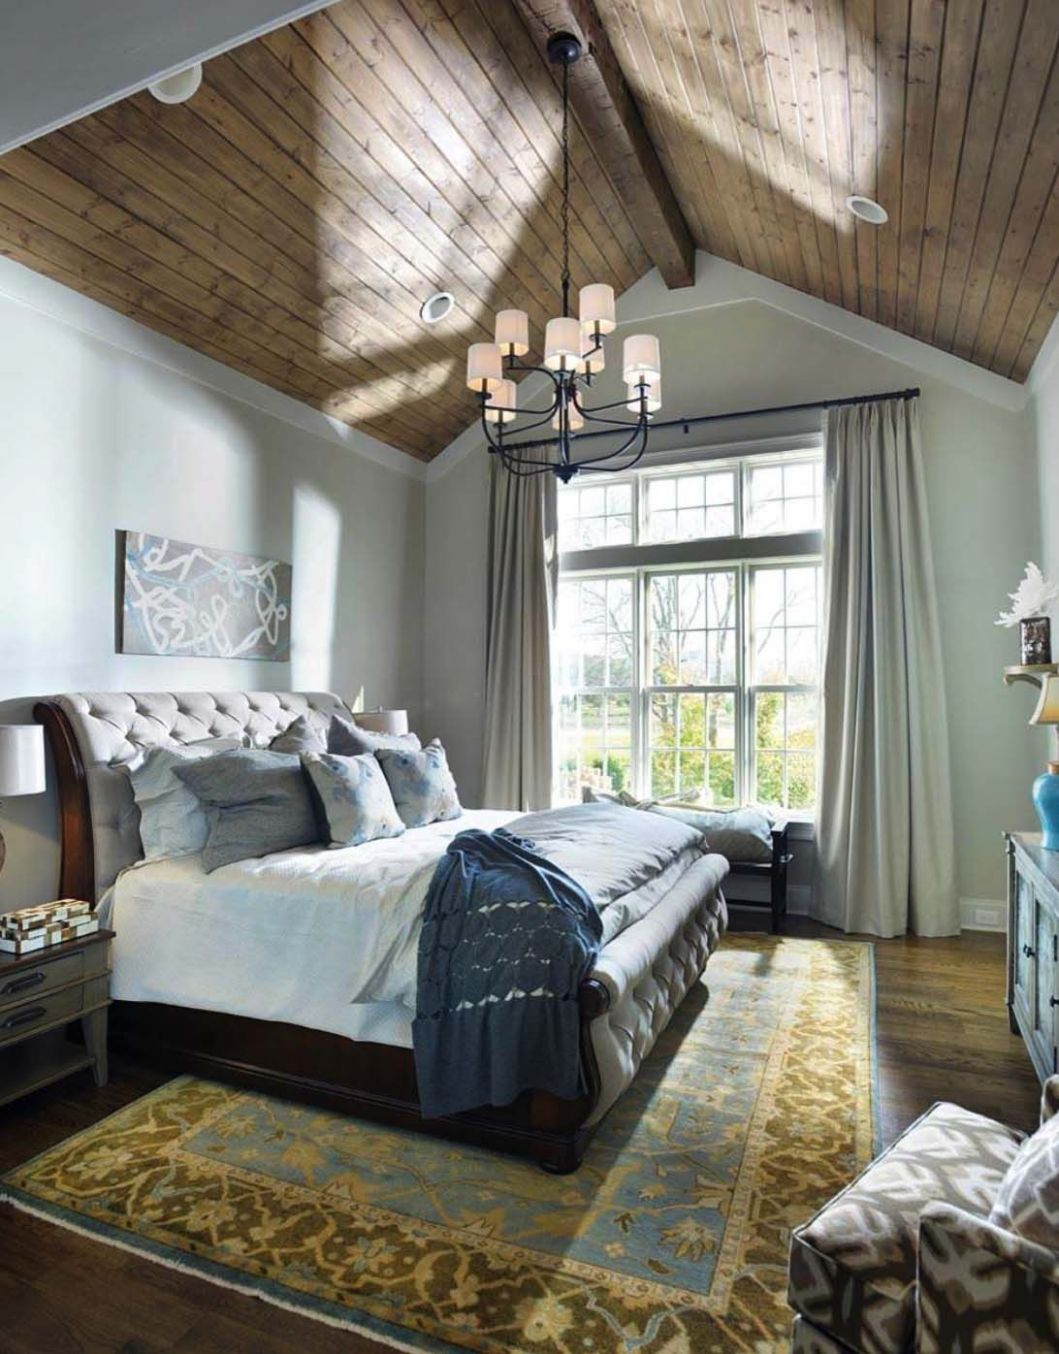 10 Stunning master bedroom retreats with vaulted ceilings | Master ...